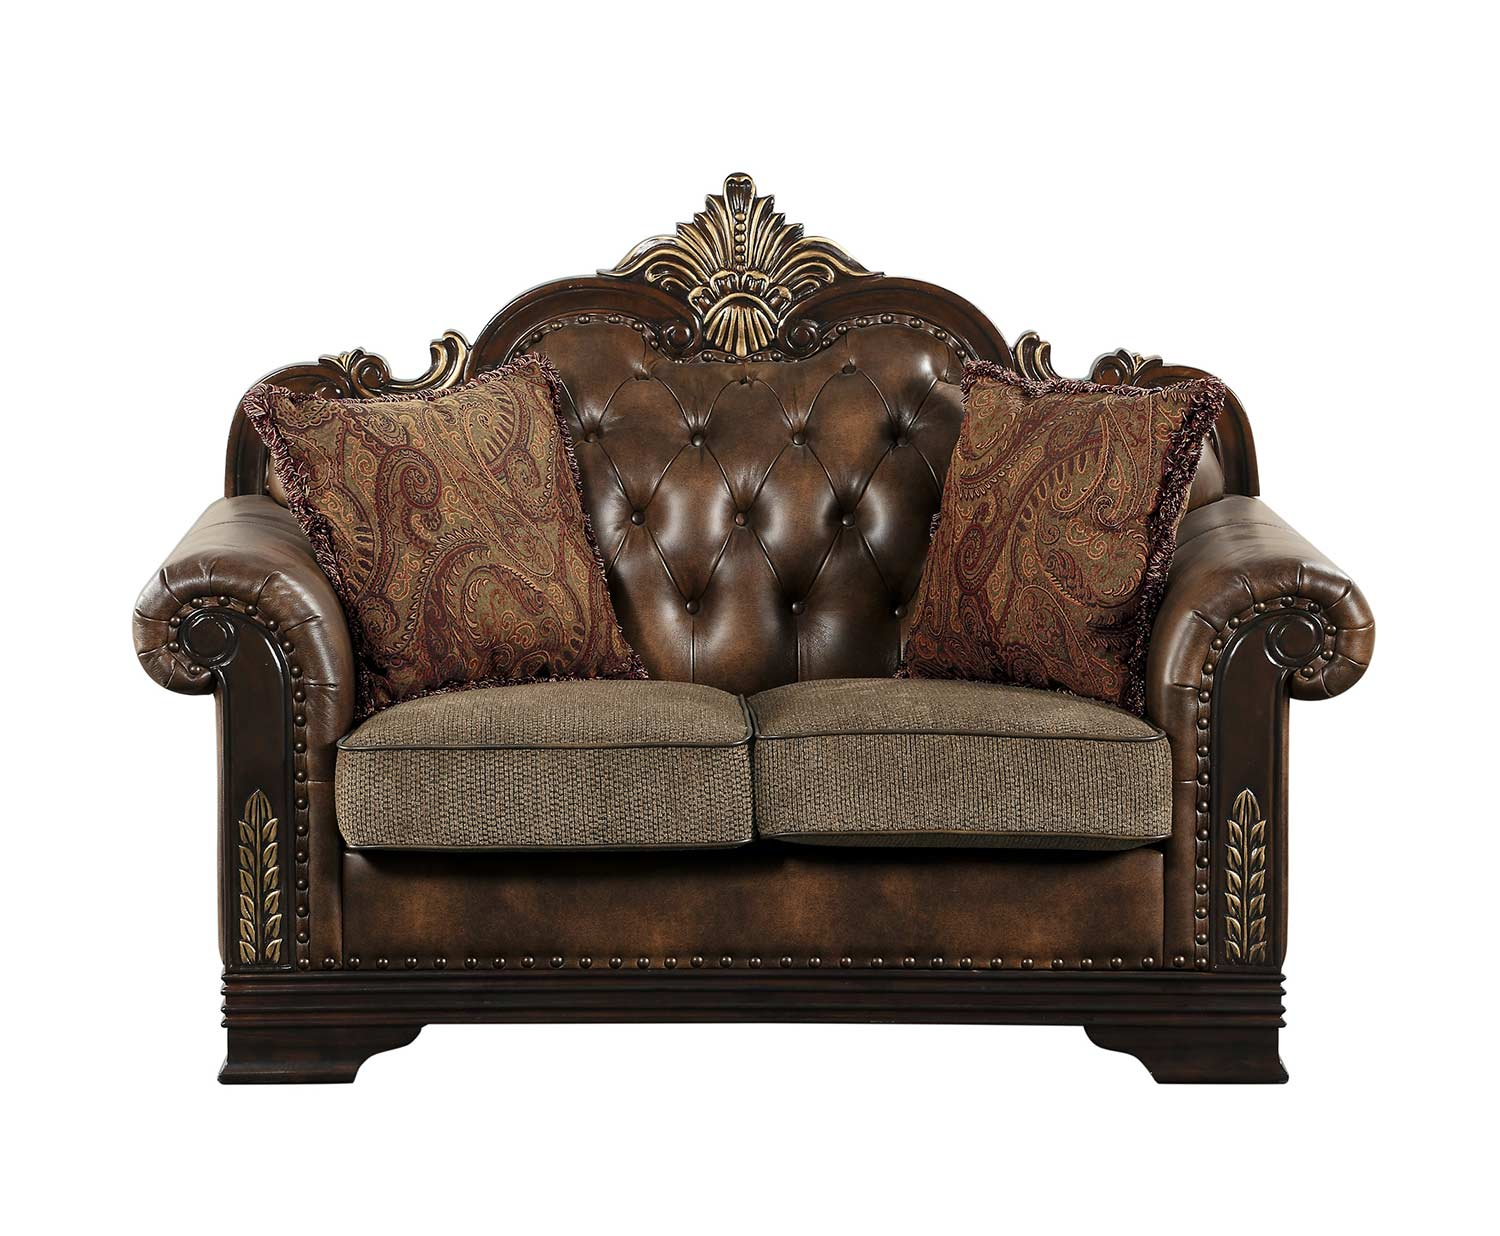 Homelegance Croydon Love Seat - Brown